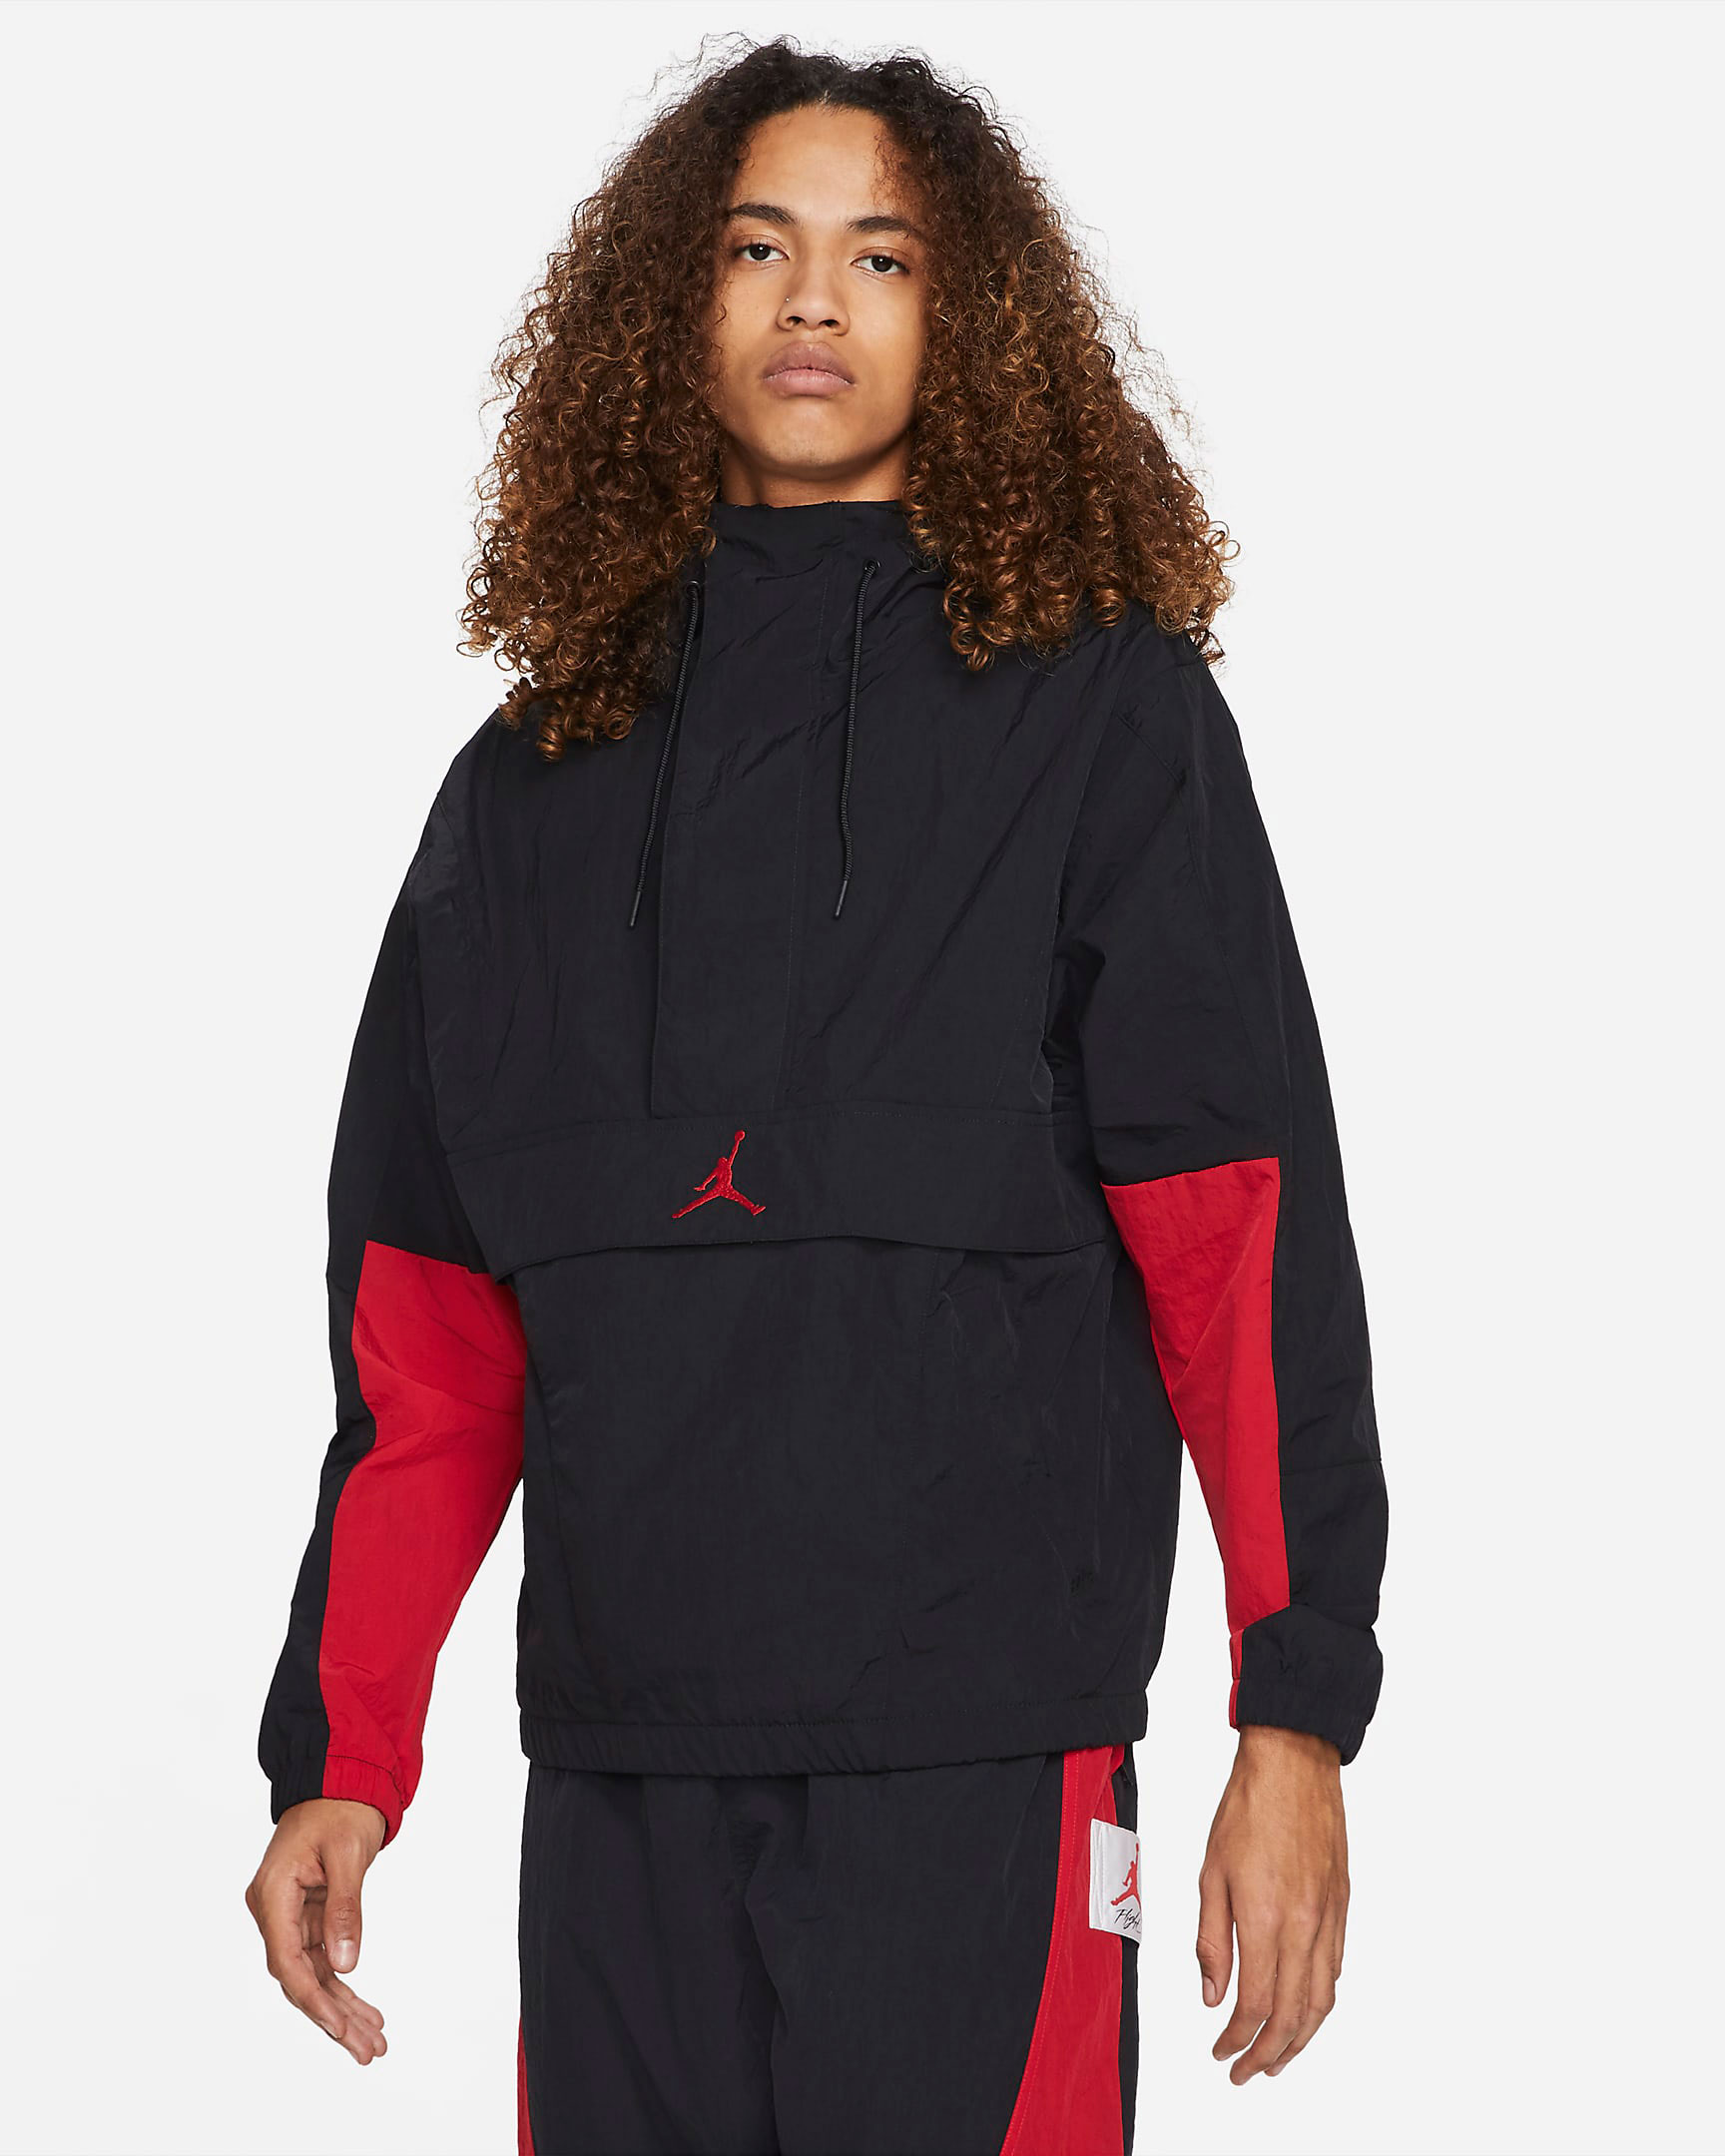 jordan-jumpman-classics-half-zip-jacket-black-red-1